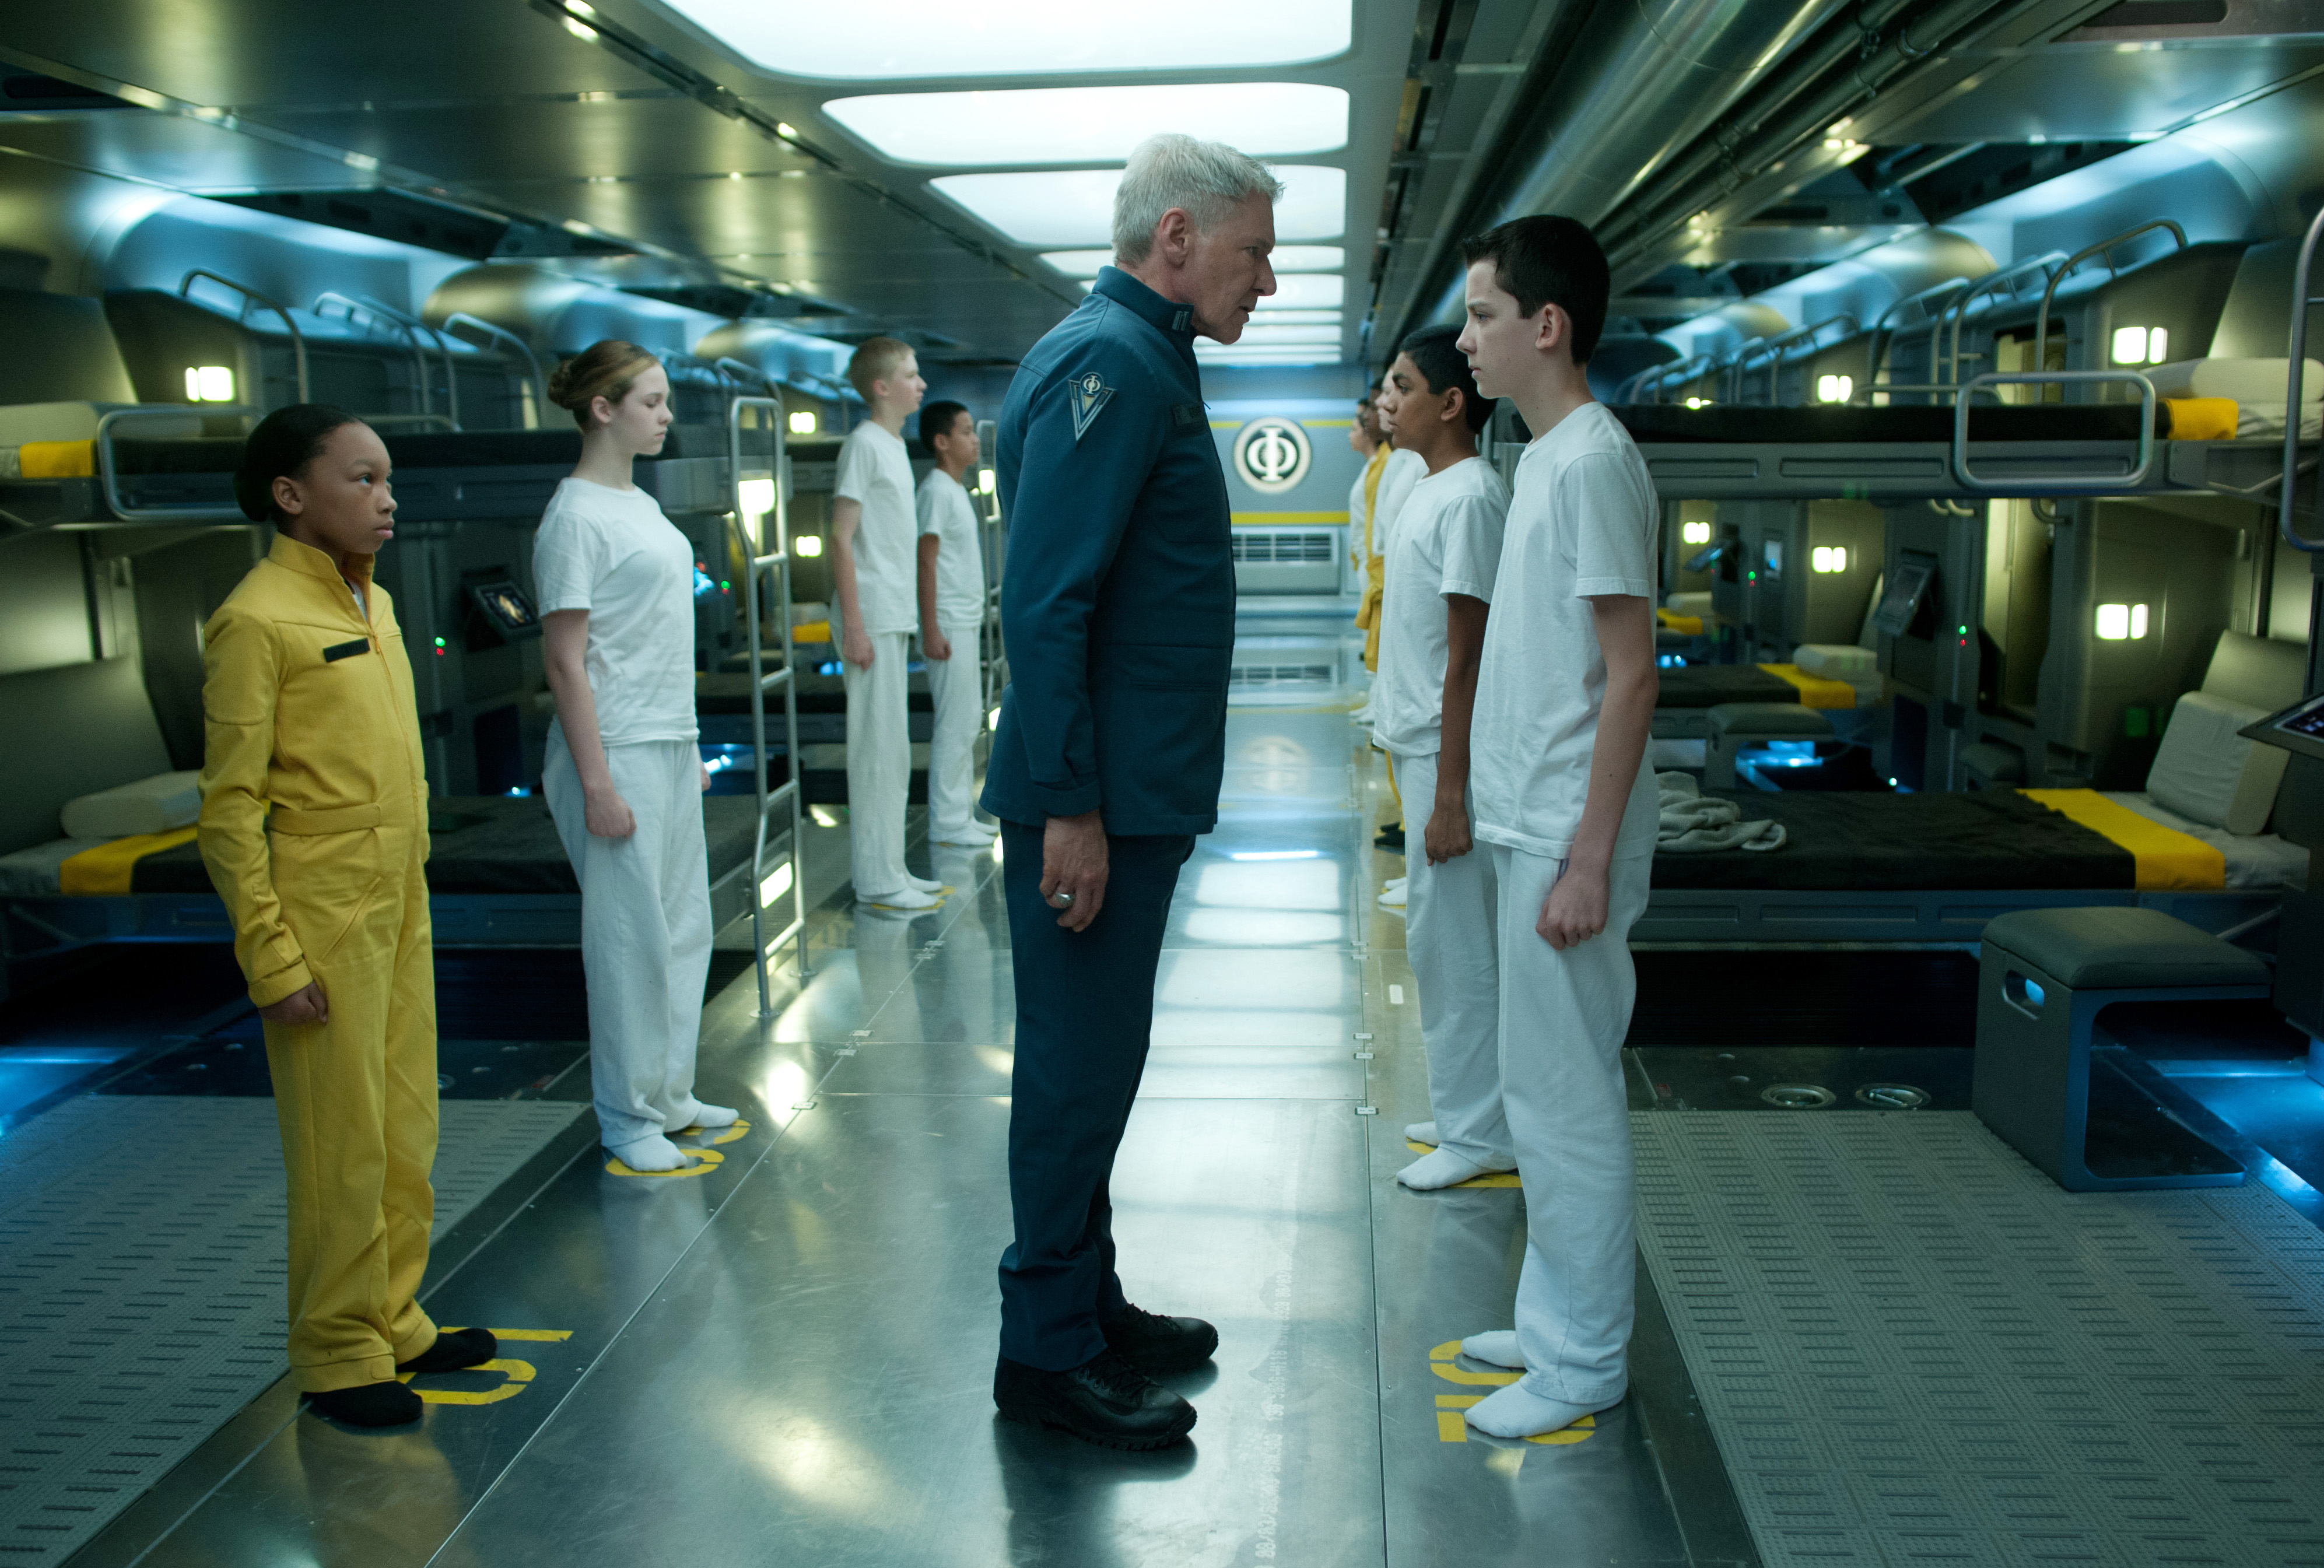 Ender's game with harrison ford and asa butterfield - scifiempire.net